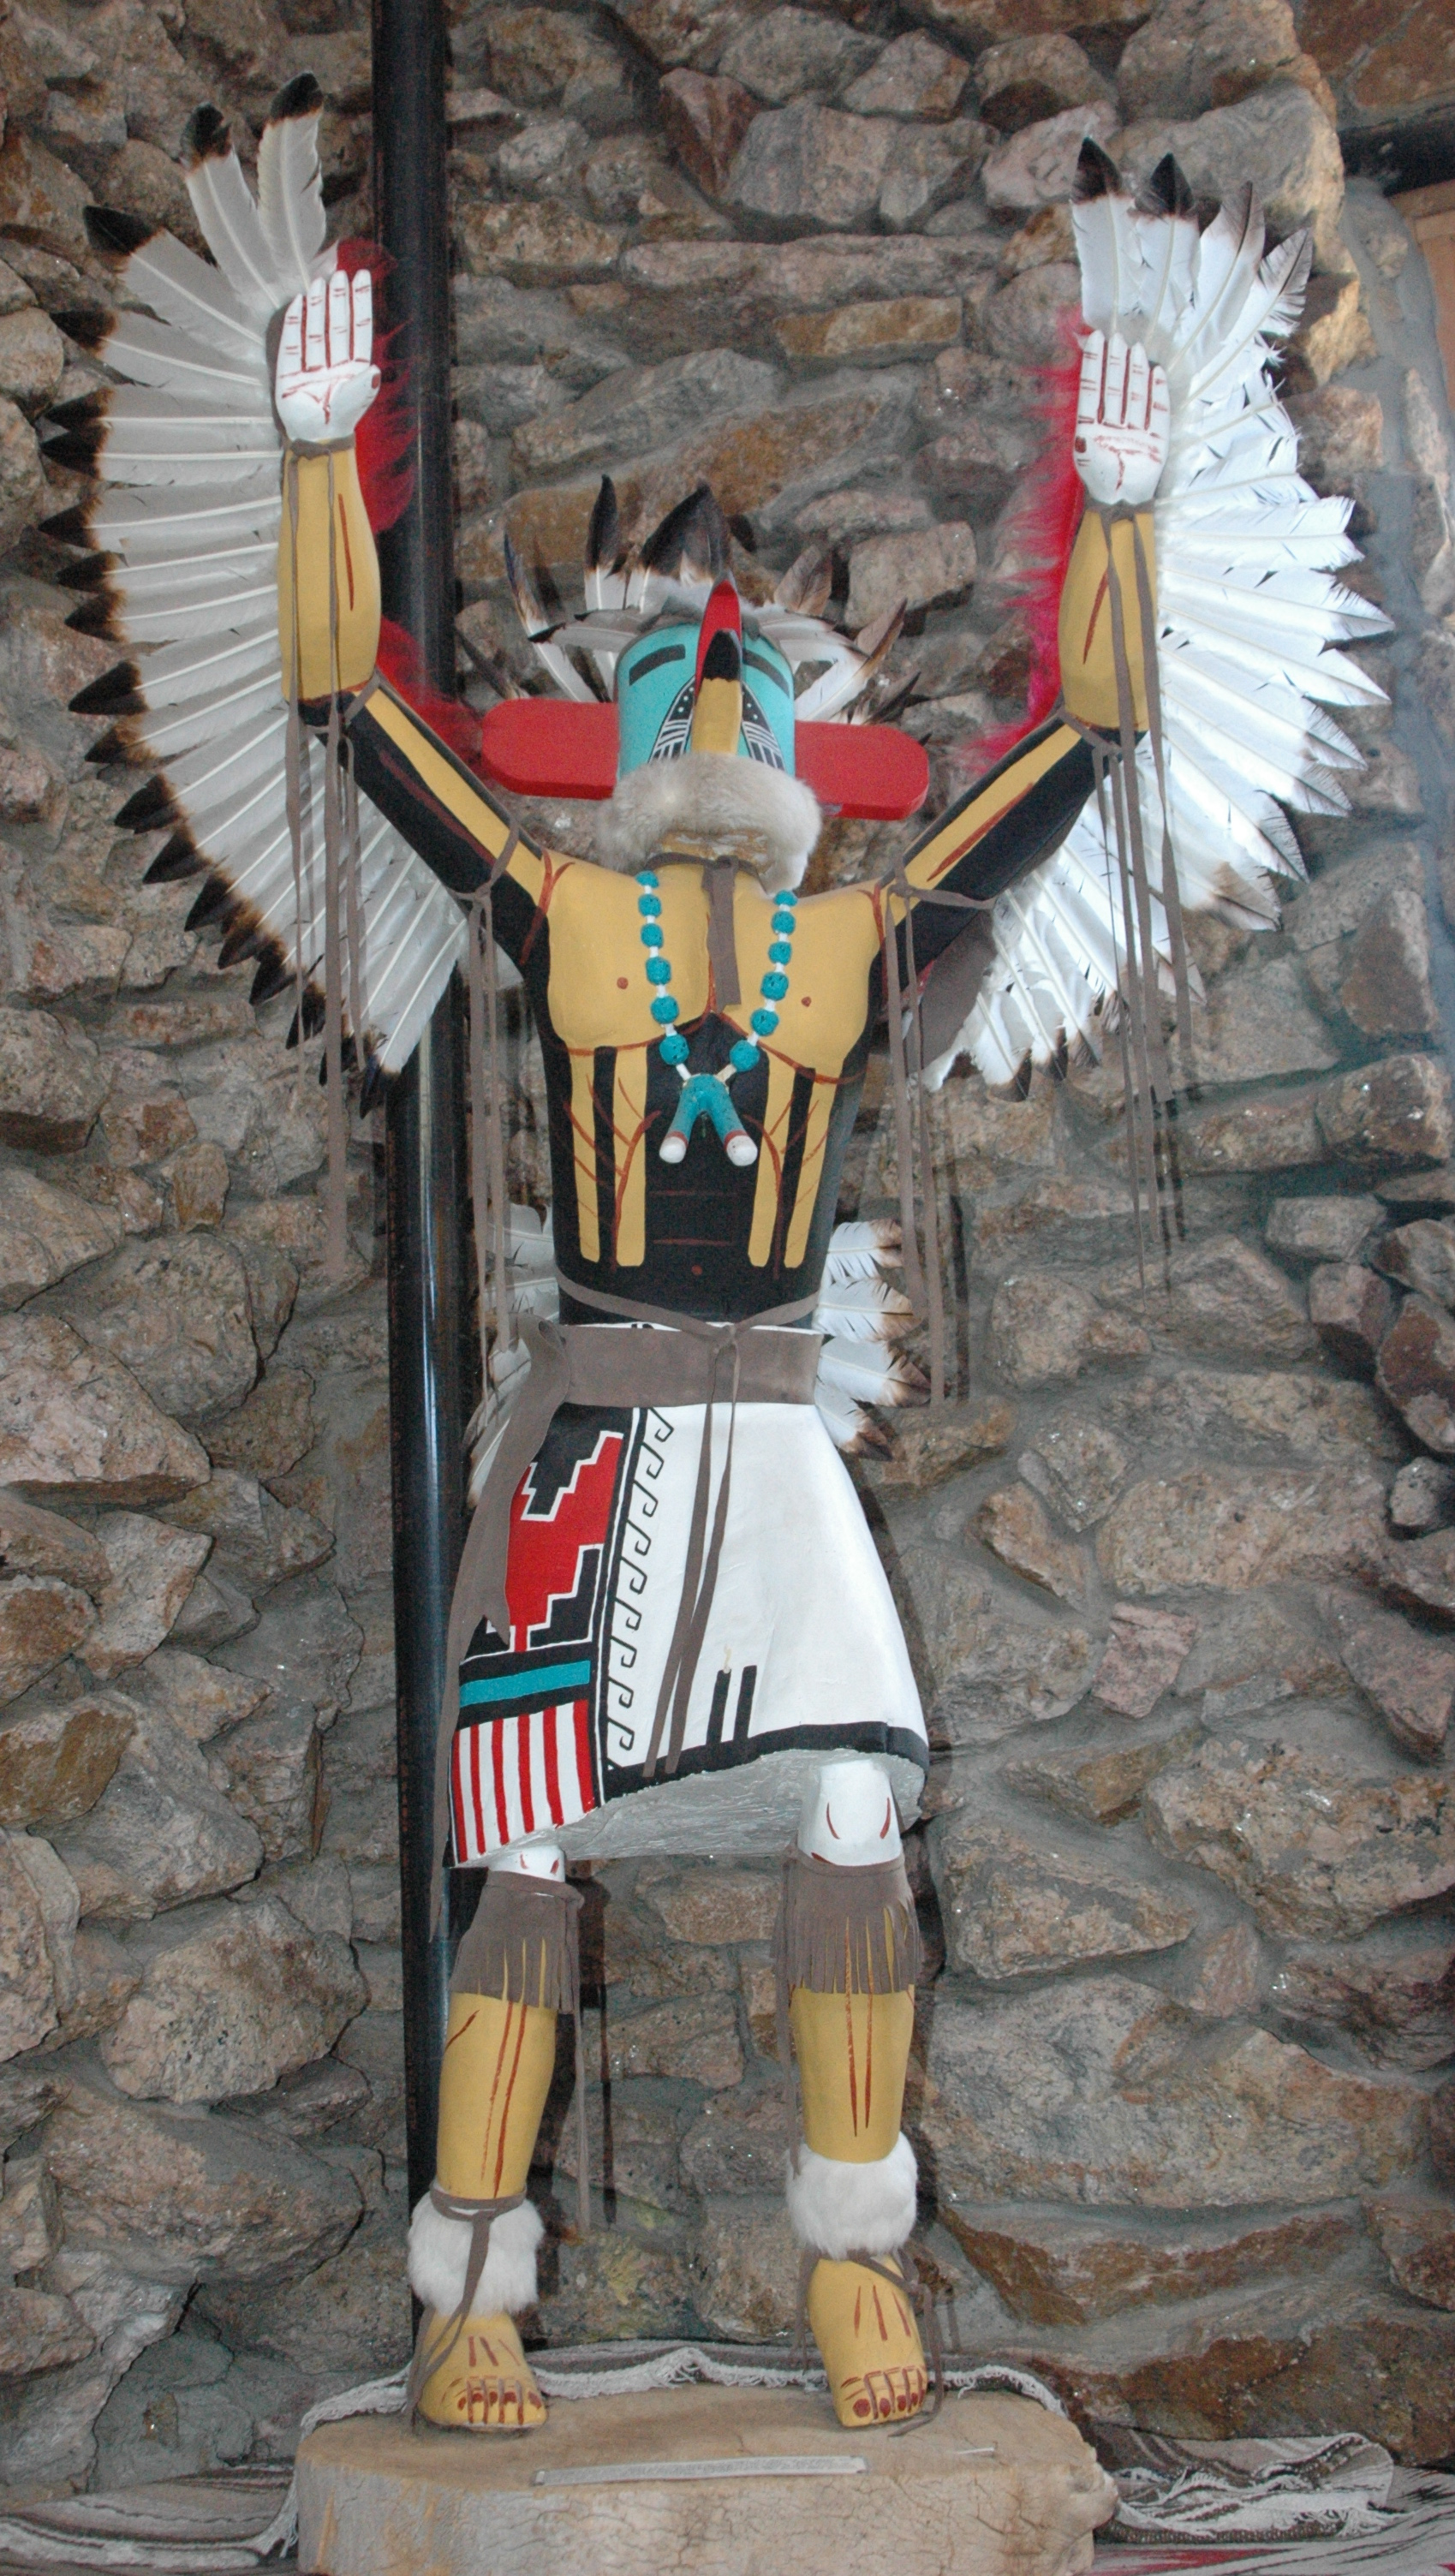 History Of Us Science Fiction And Fantasy Magazines To: A Little History Of Crazy Horse Memorial